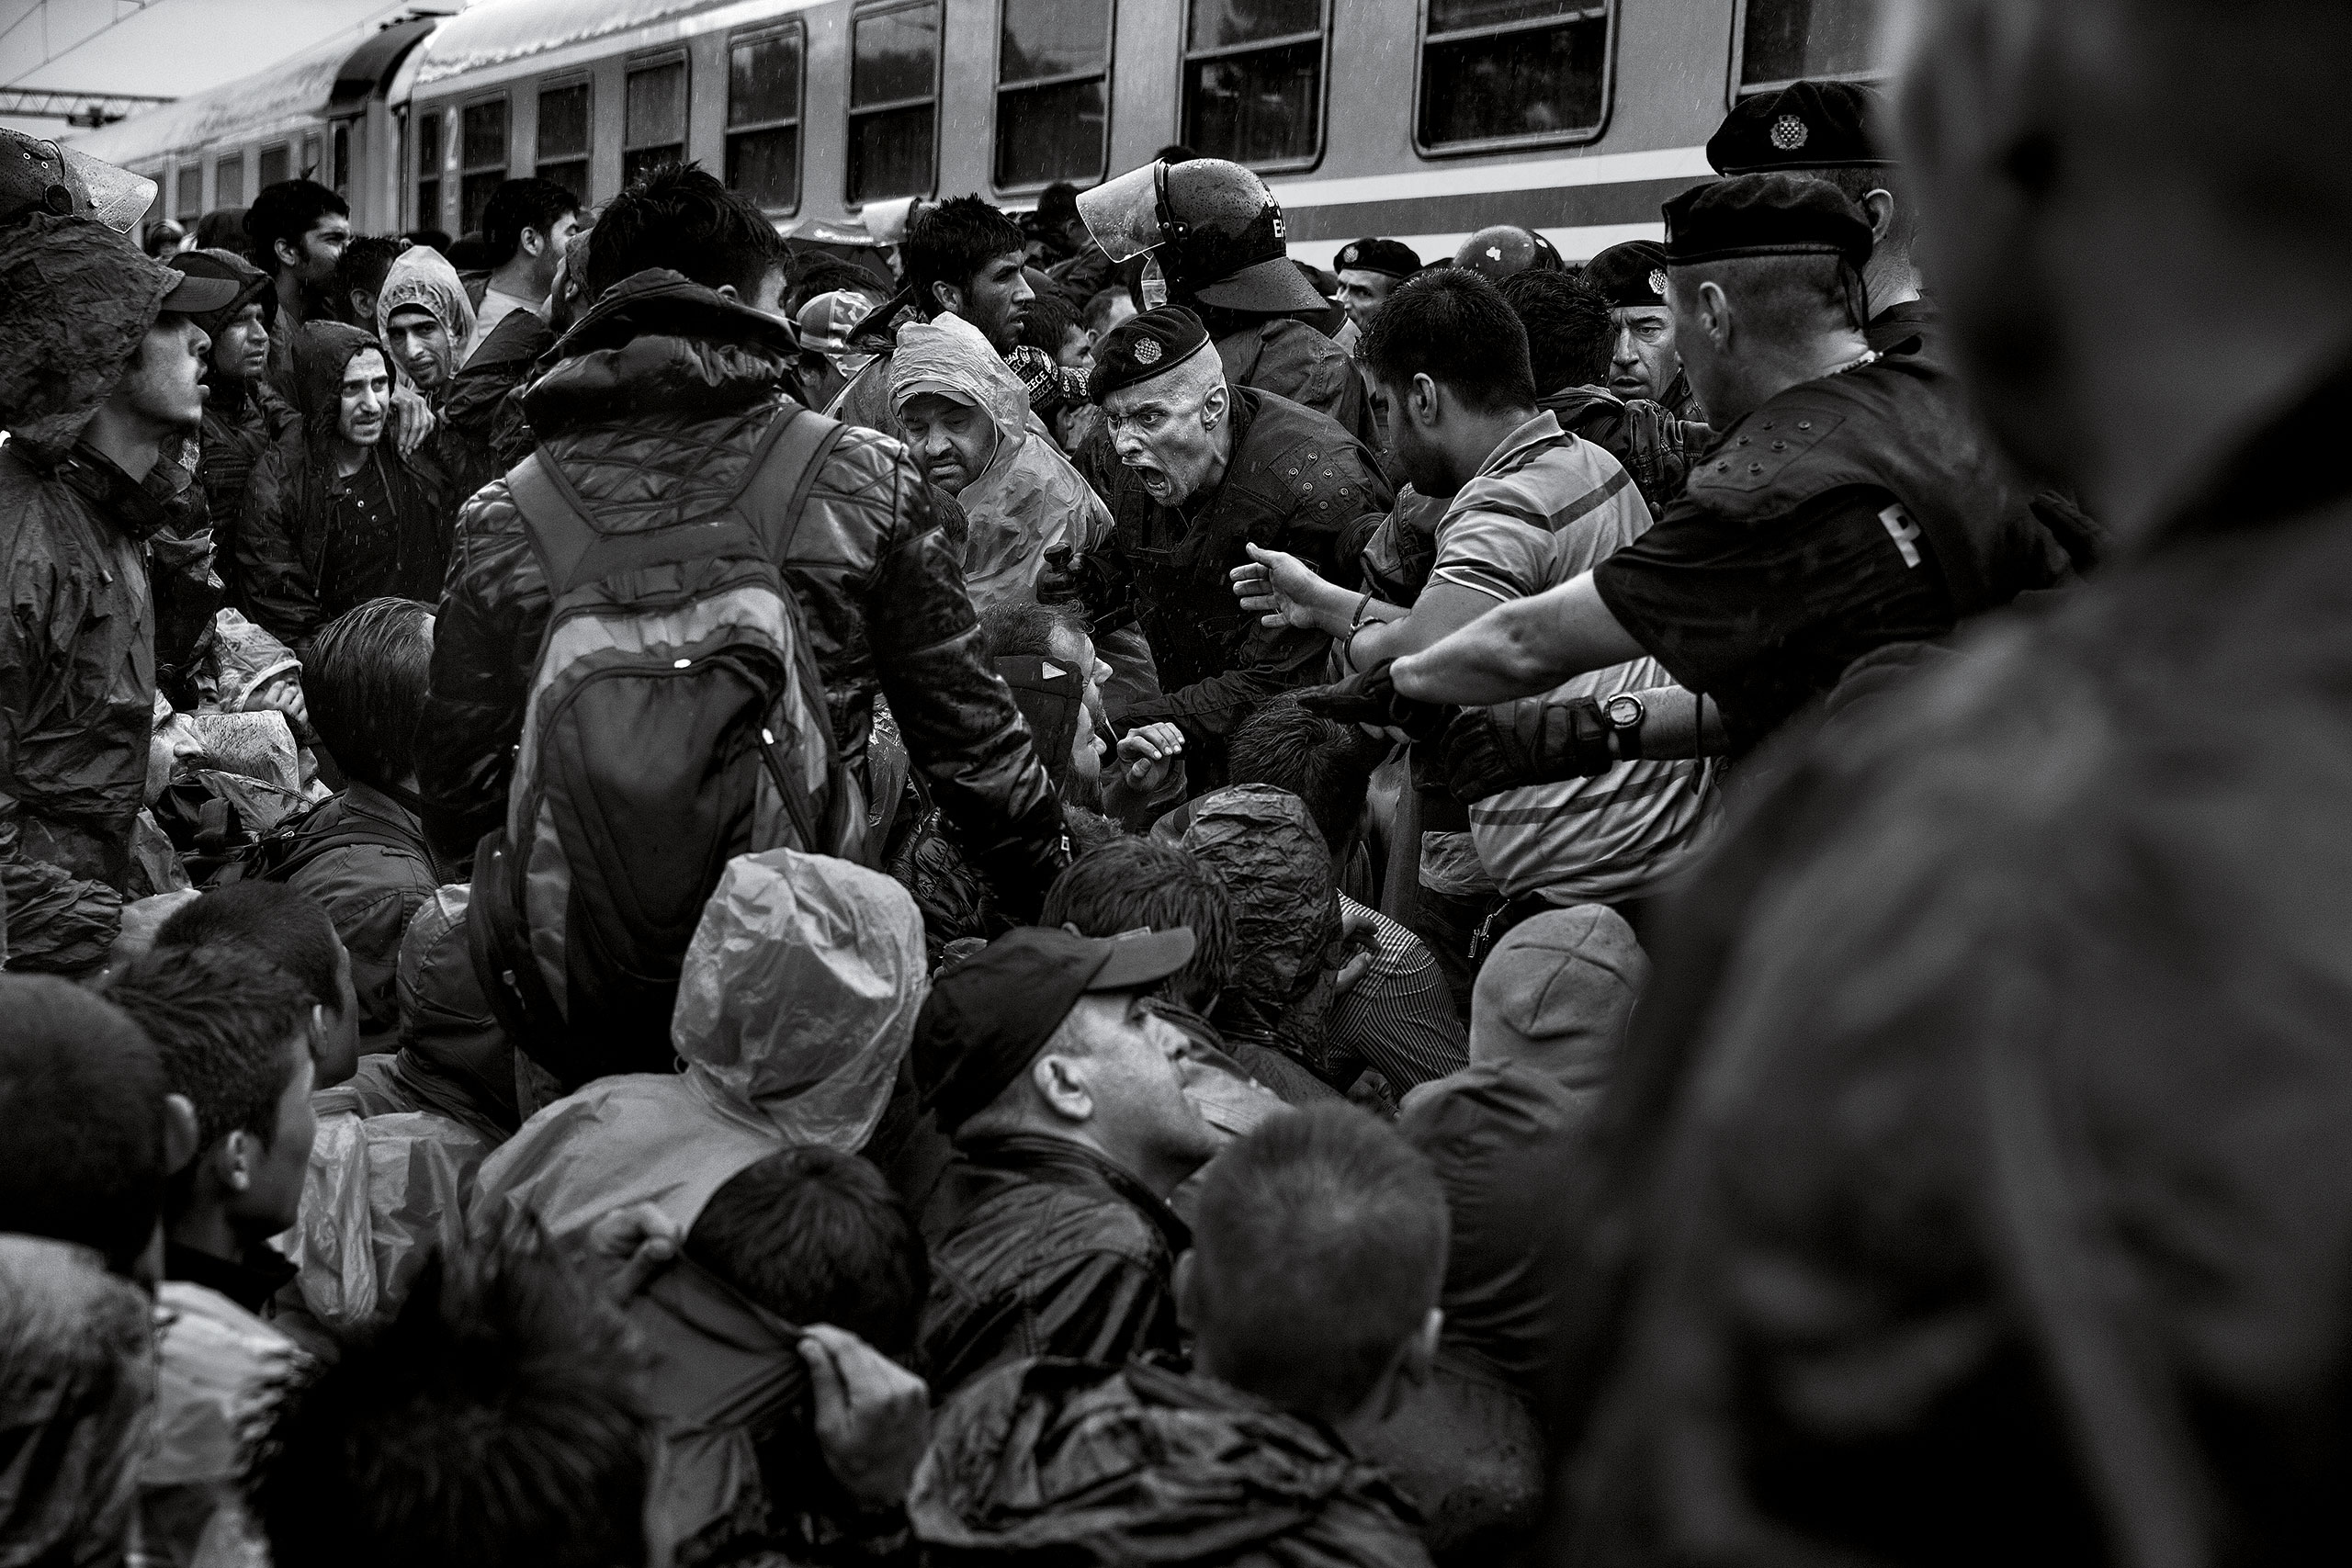 A police officer screams at refugees as they attempt to board a train in Tovarnik, Croatia, Sept. 17, 2015.From  James Nachtwey: The Journey of Hope